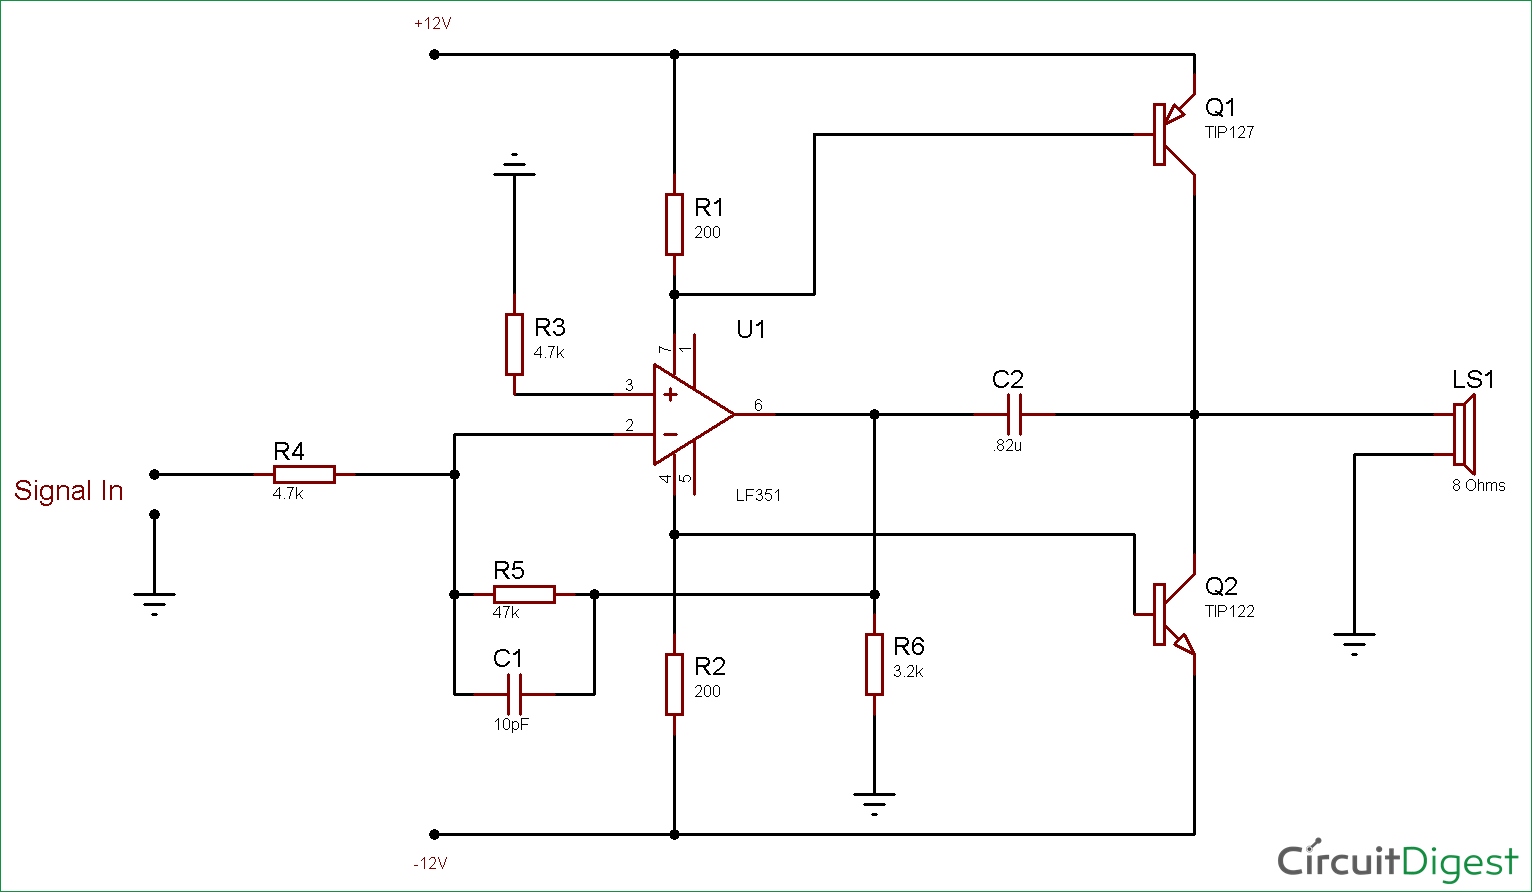 Circuit Diagram for 10 Watt Audio Amplifier using Op-Amp and Power Transistors